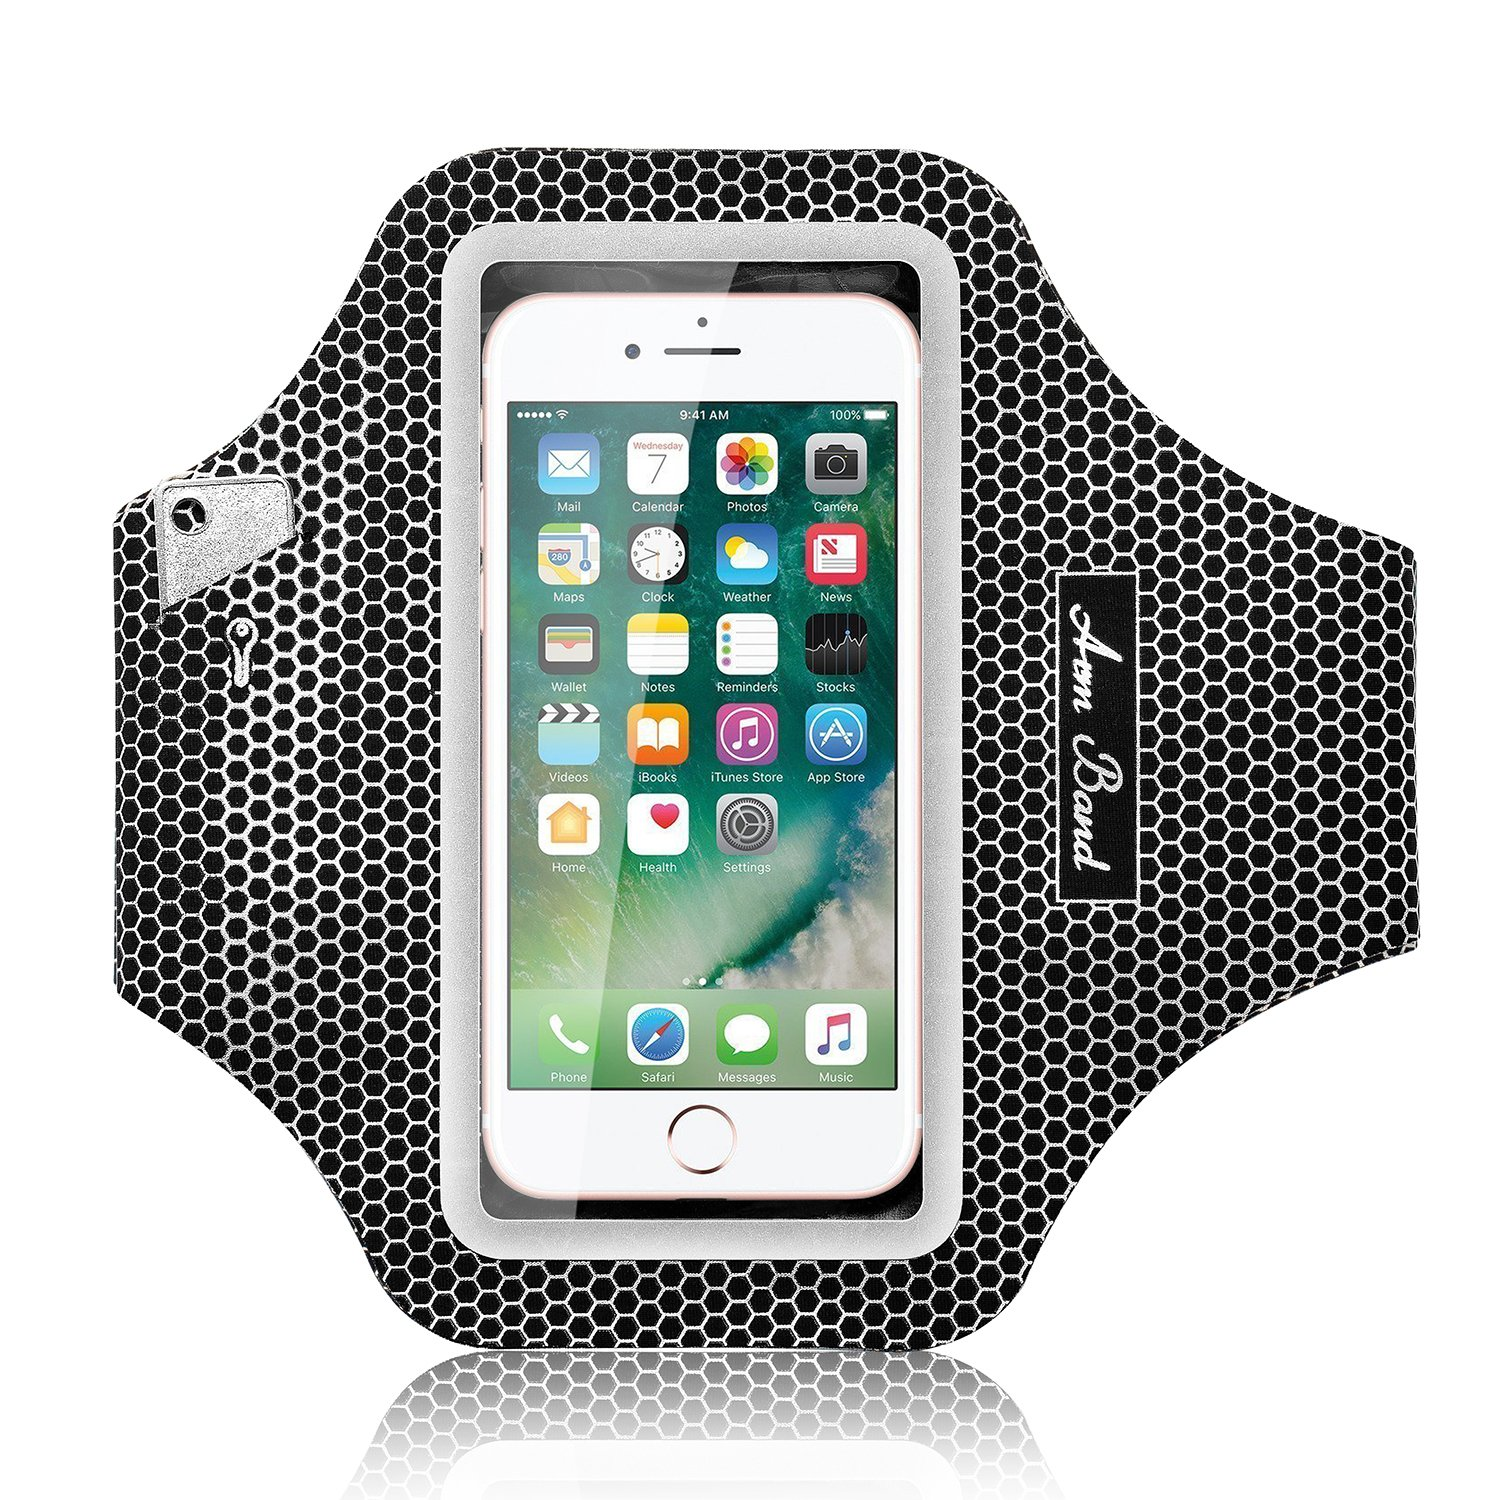 Armband for iPhone 7 8 Plus, Alfort Waterproof Running-Armband with Keychain and Adjustable Strap, for iPhone X 6 6s, Samsung S9 S8 Plus S7 Edge, LG, Sony (6 inch, Black with Mesh)